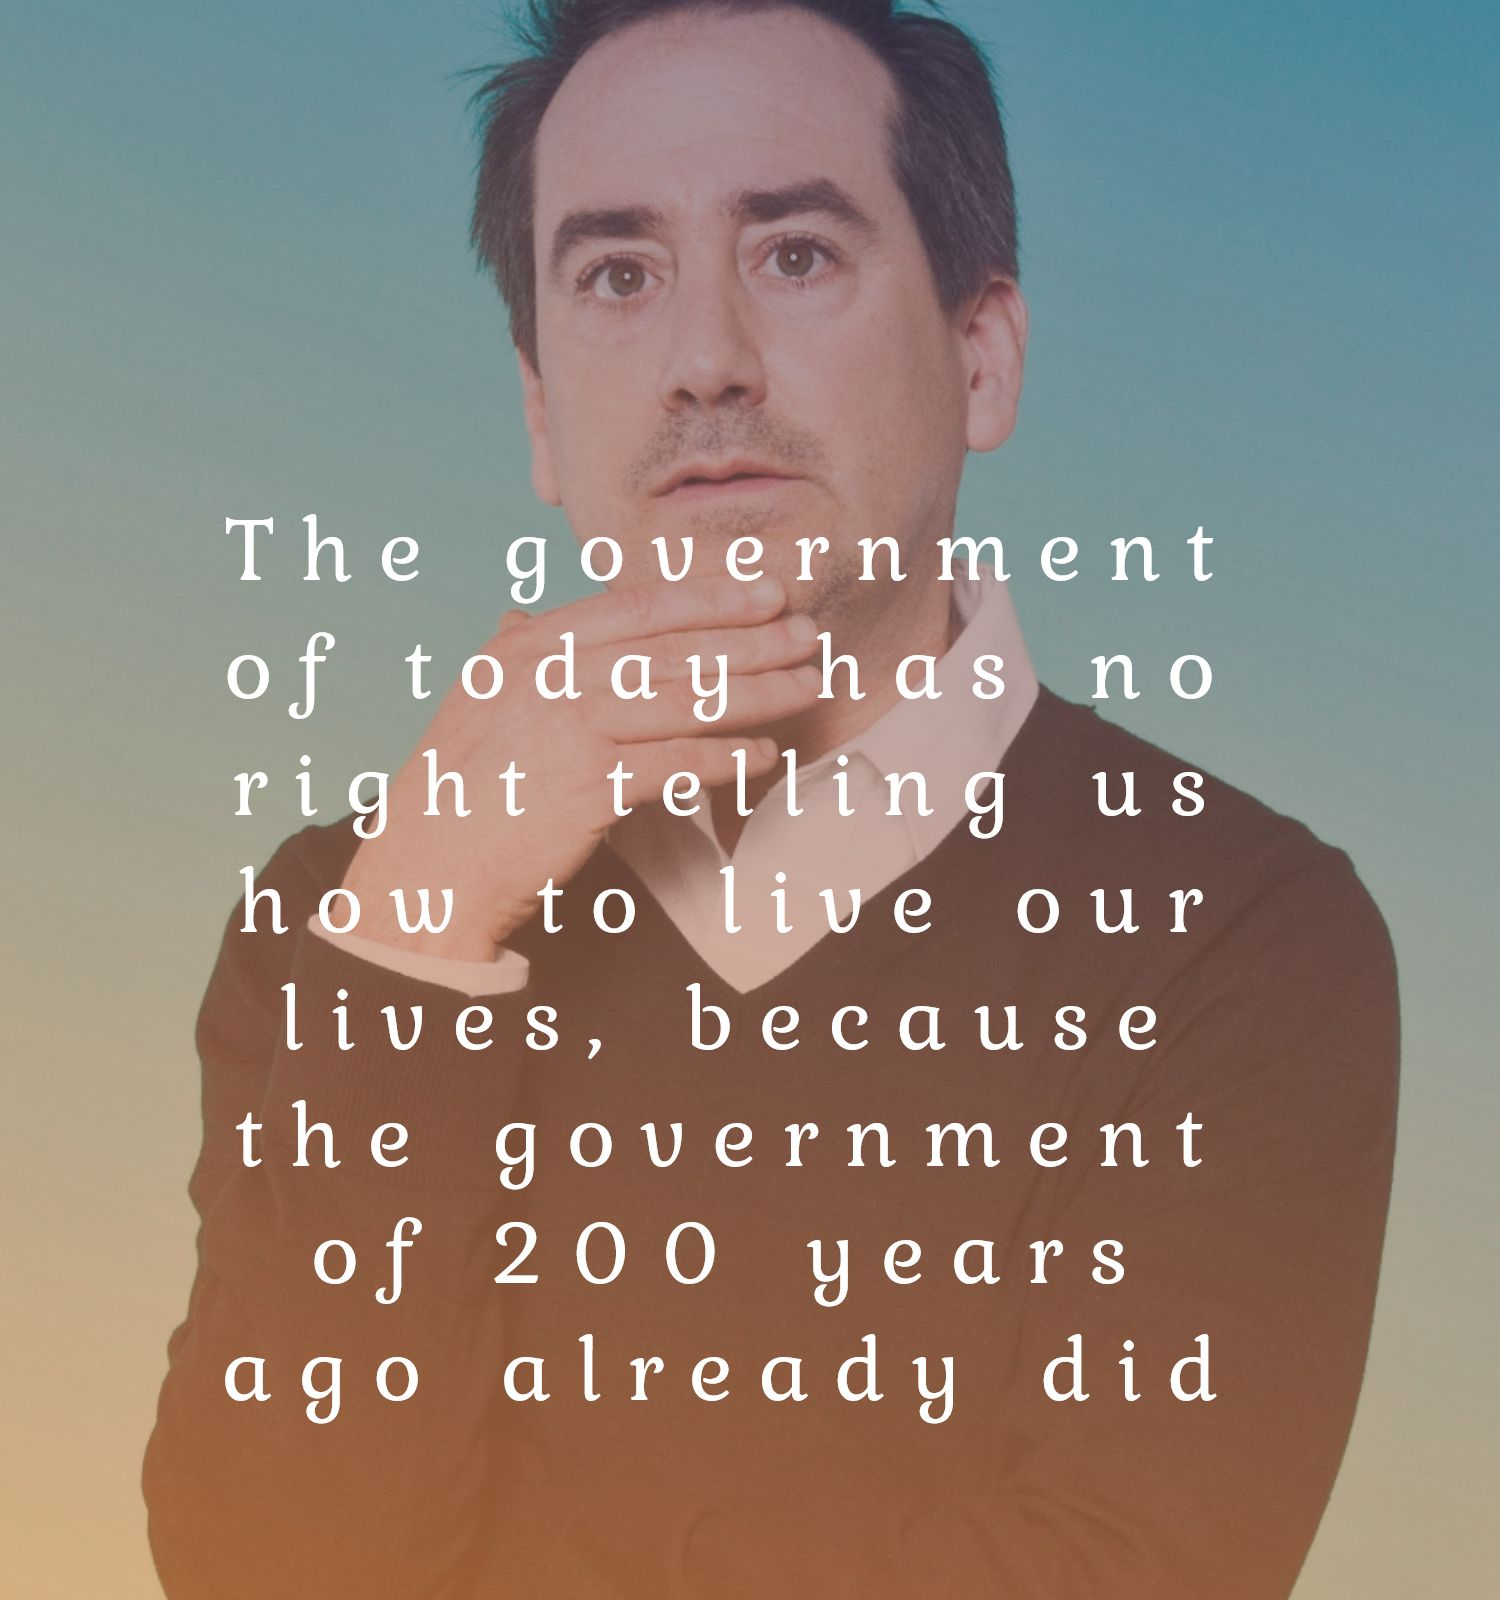 """The government of today has no right telling us how to live our lives, because the government of 200 years ago already did"" – Jack Kelly [1500 x 1600]"